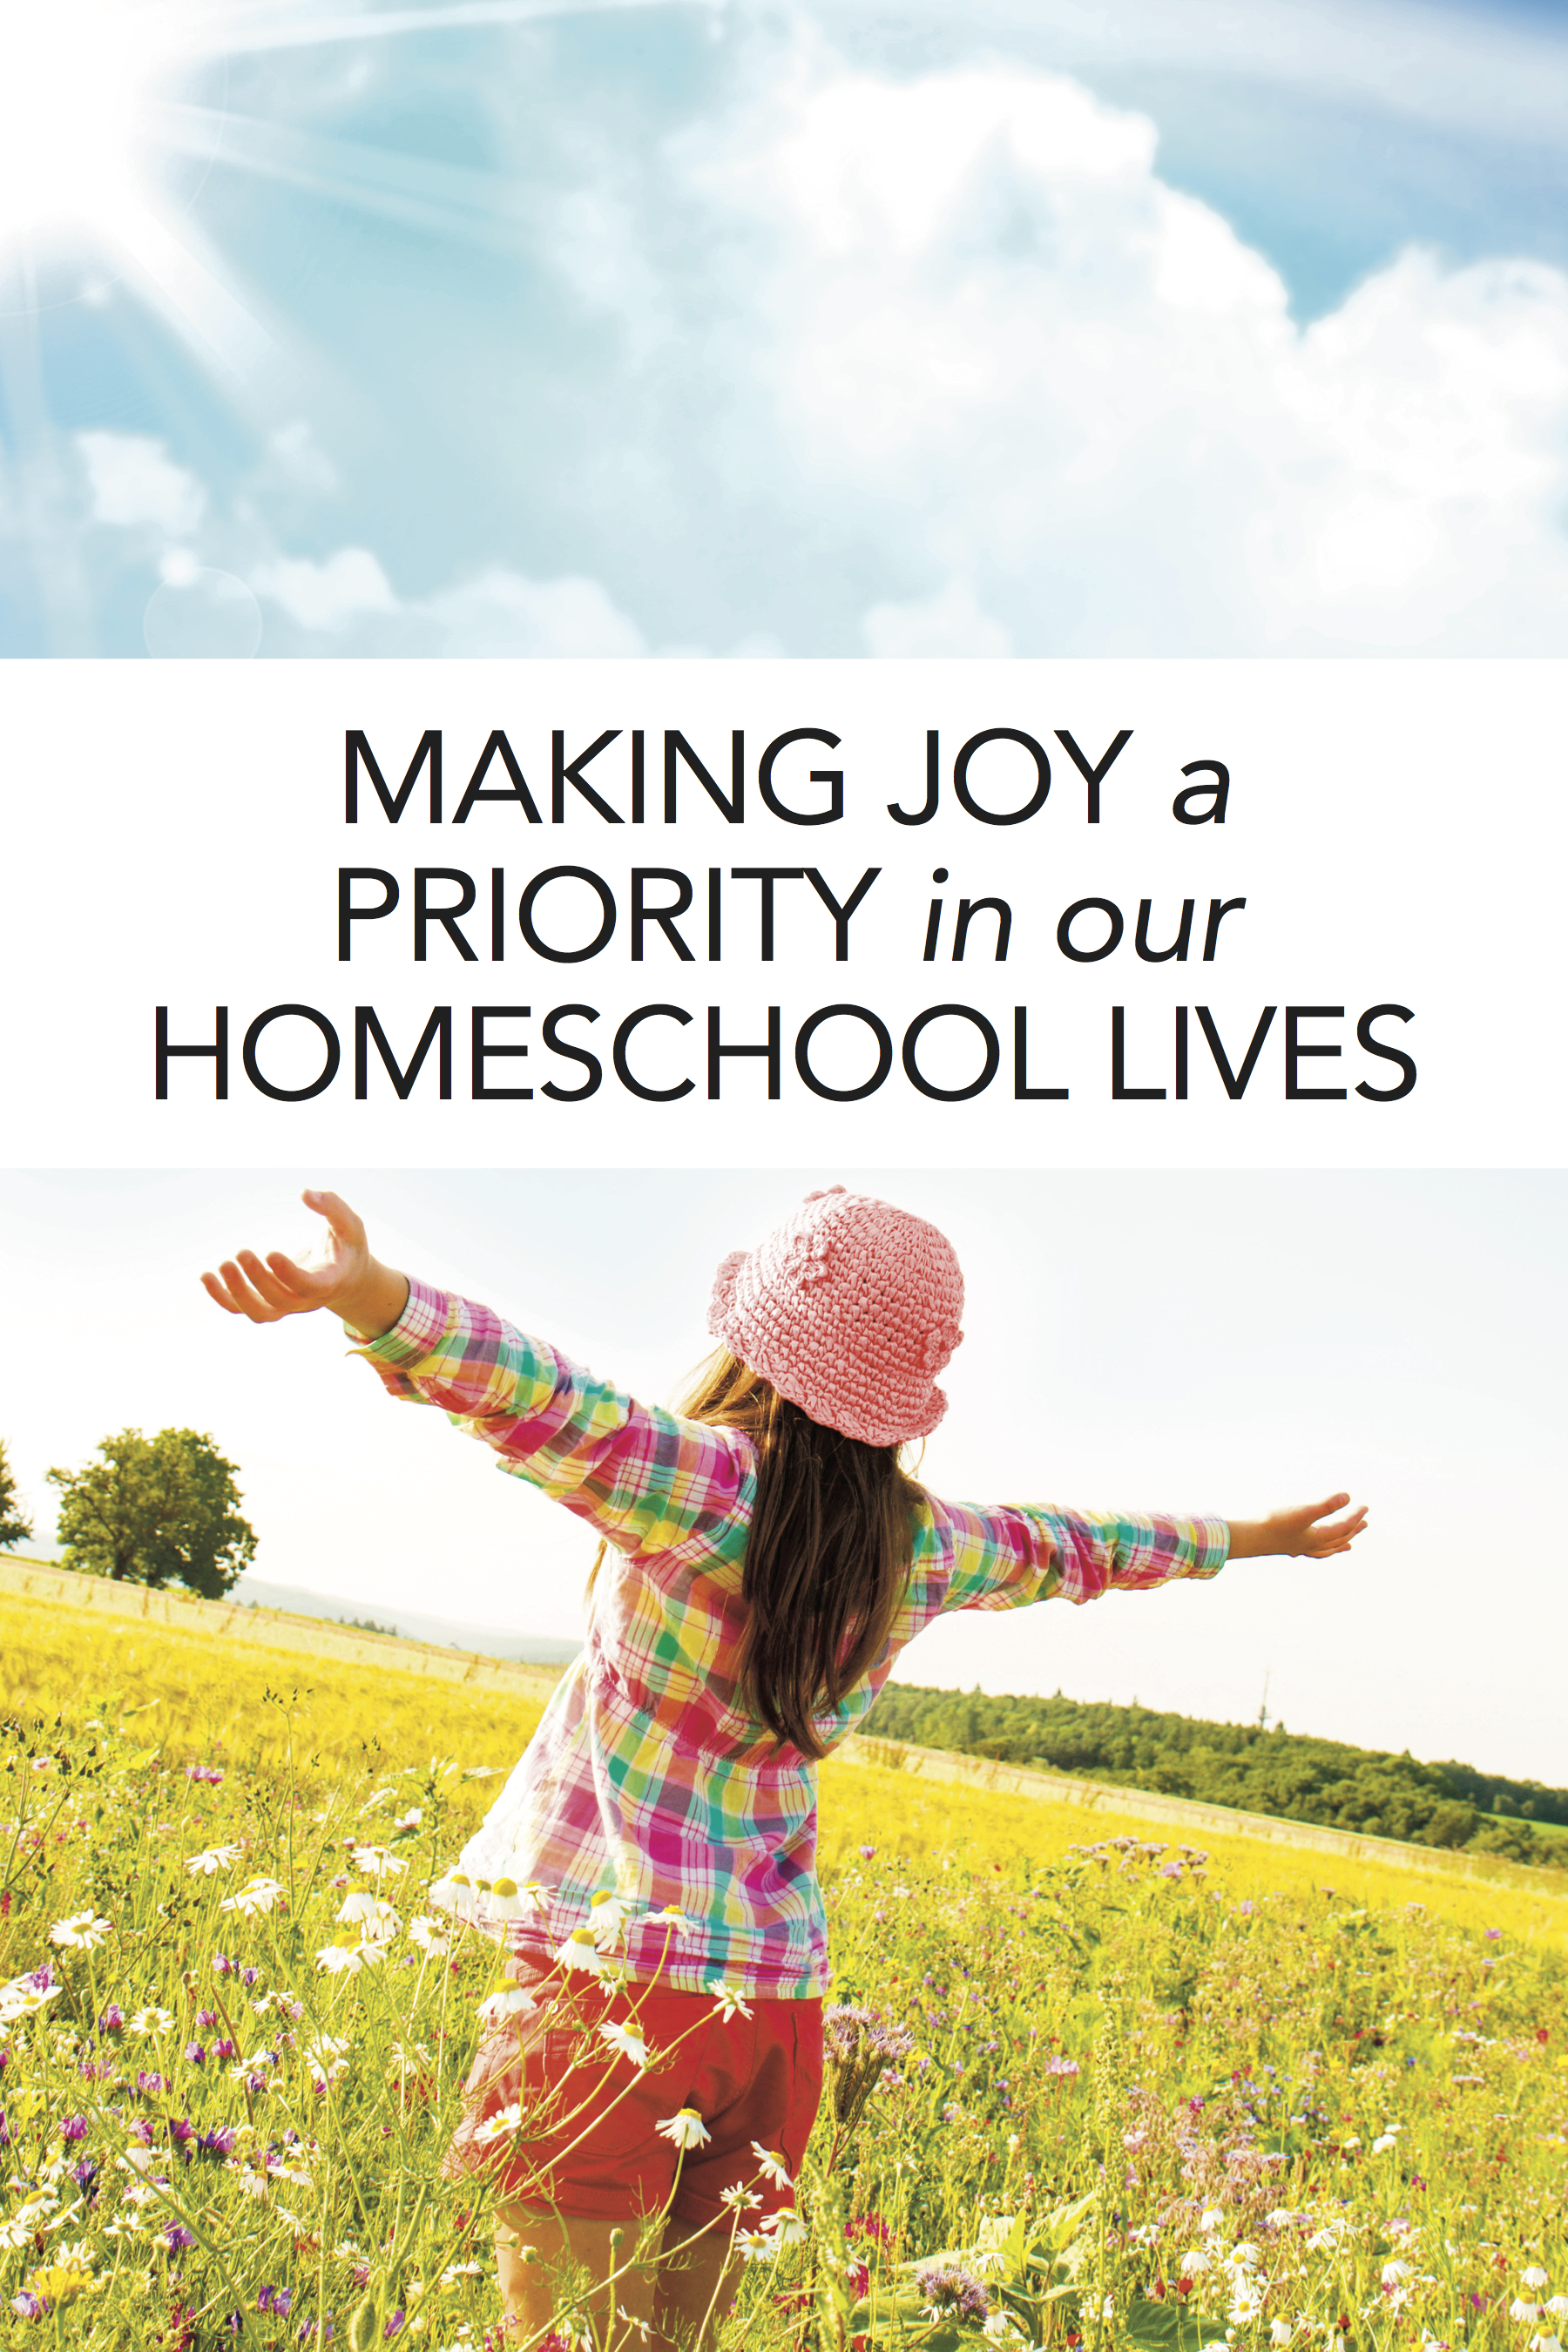 Great read: Homeschooling should be fun, and when it's not, maybe it's time to take a step back and rethink what we're doing.